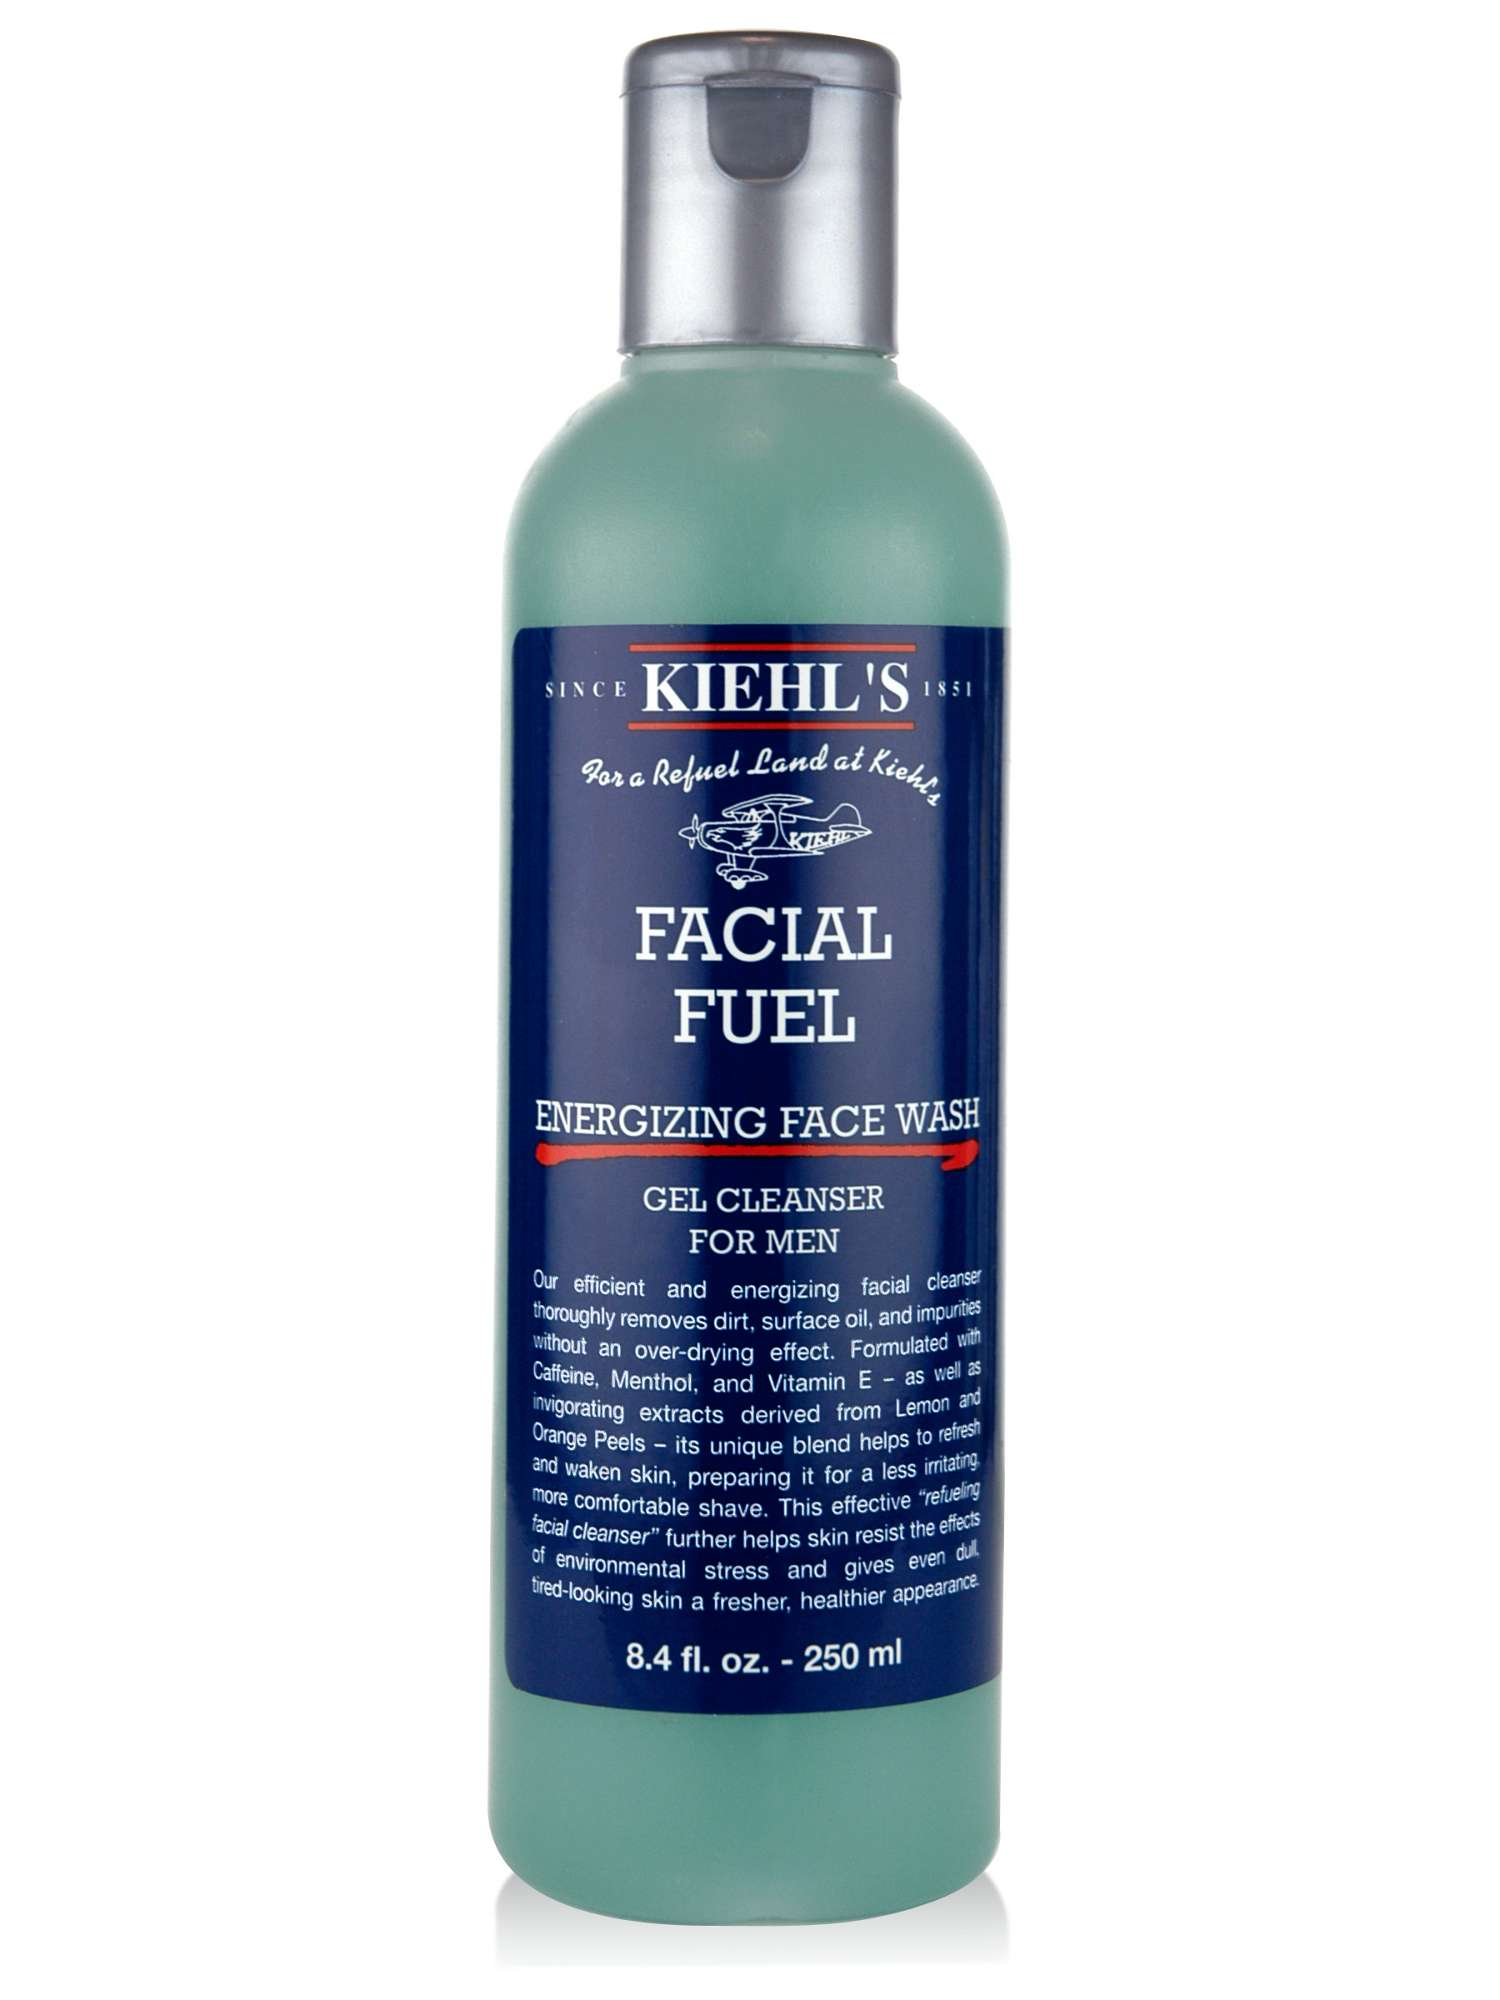 Kiehls Mens Grooming Shop House Of Fraser Amino Acid Conditioner Facial Fuel Energizing Face Wash